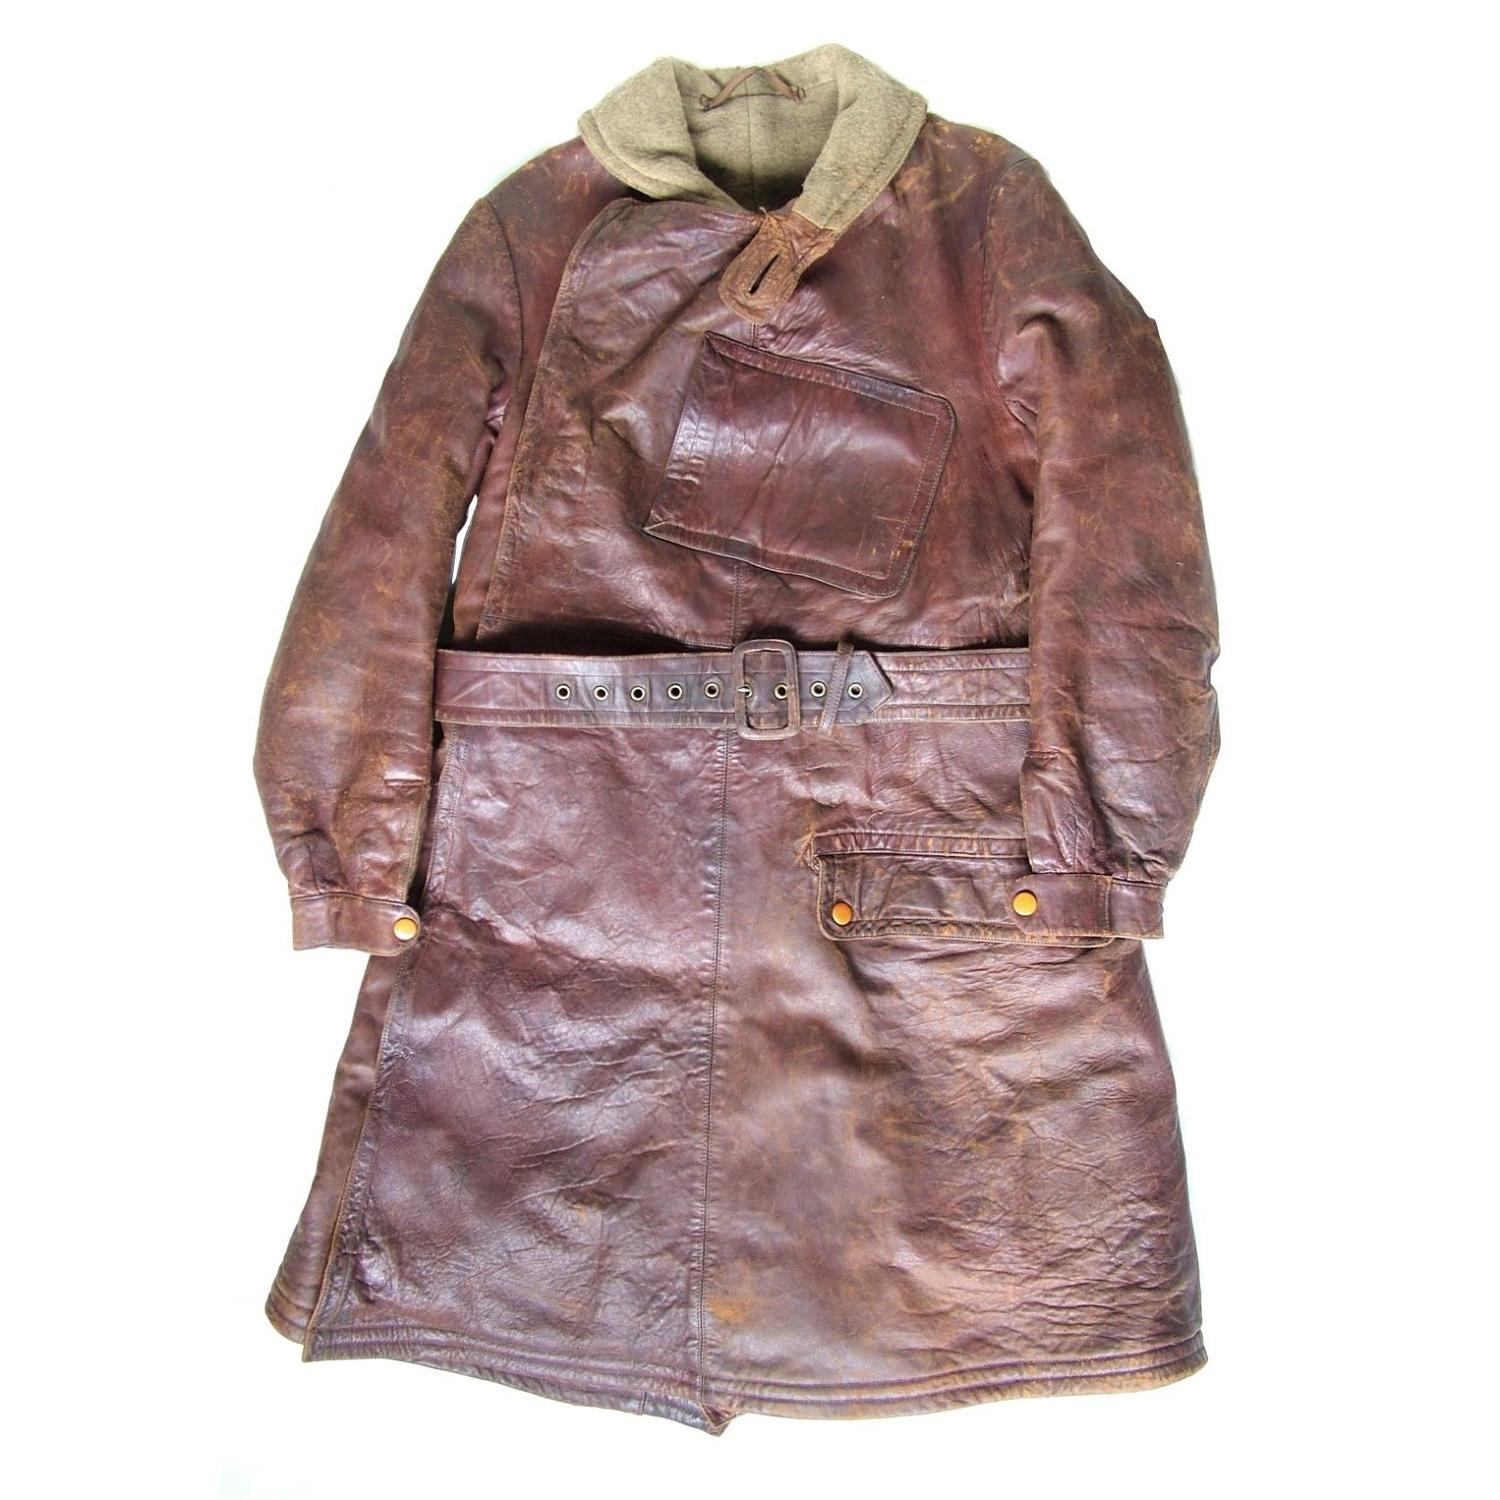 WW1 leather flying coat